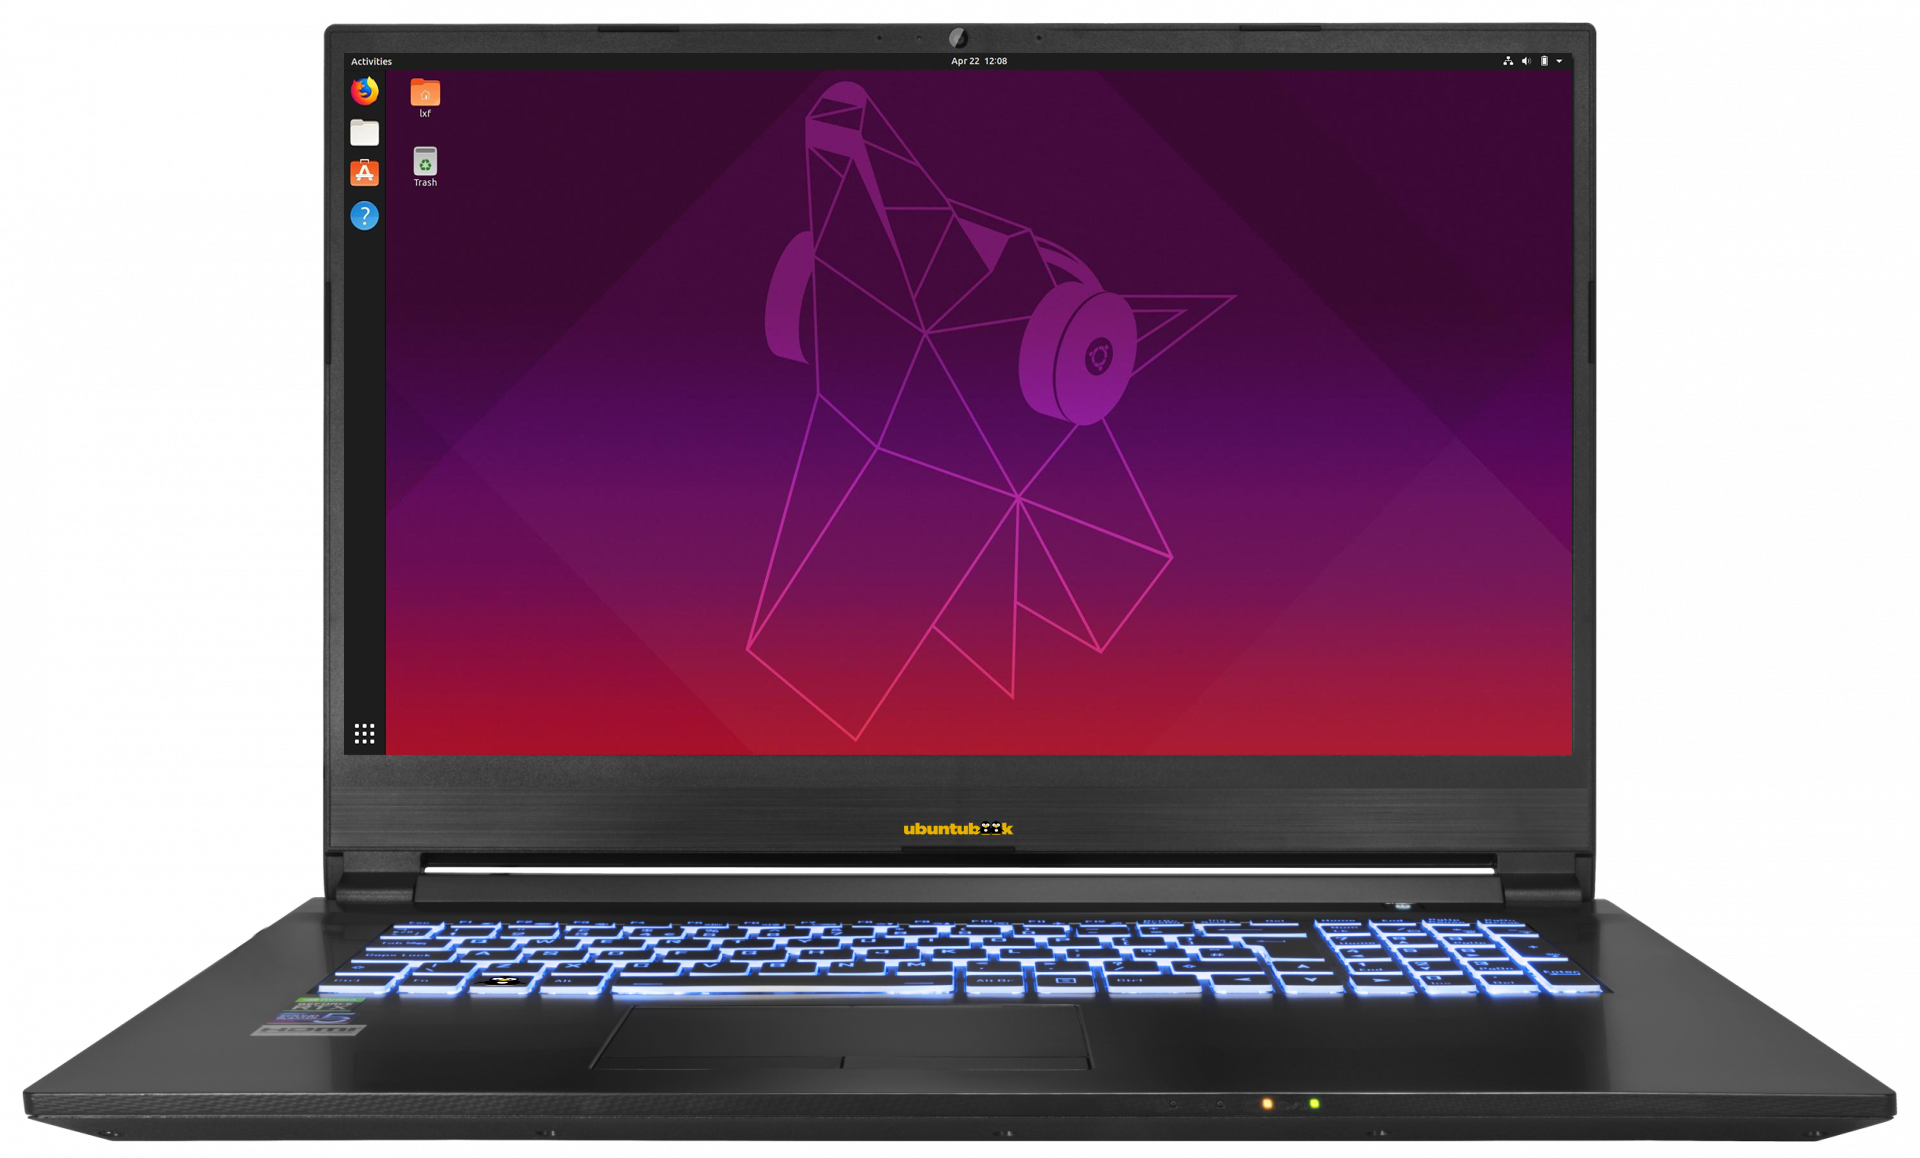 Ubuntu NoteBook 17.3